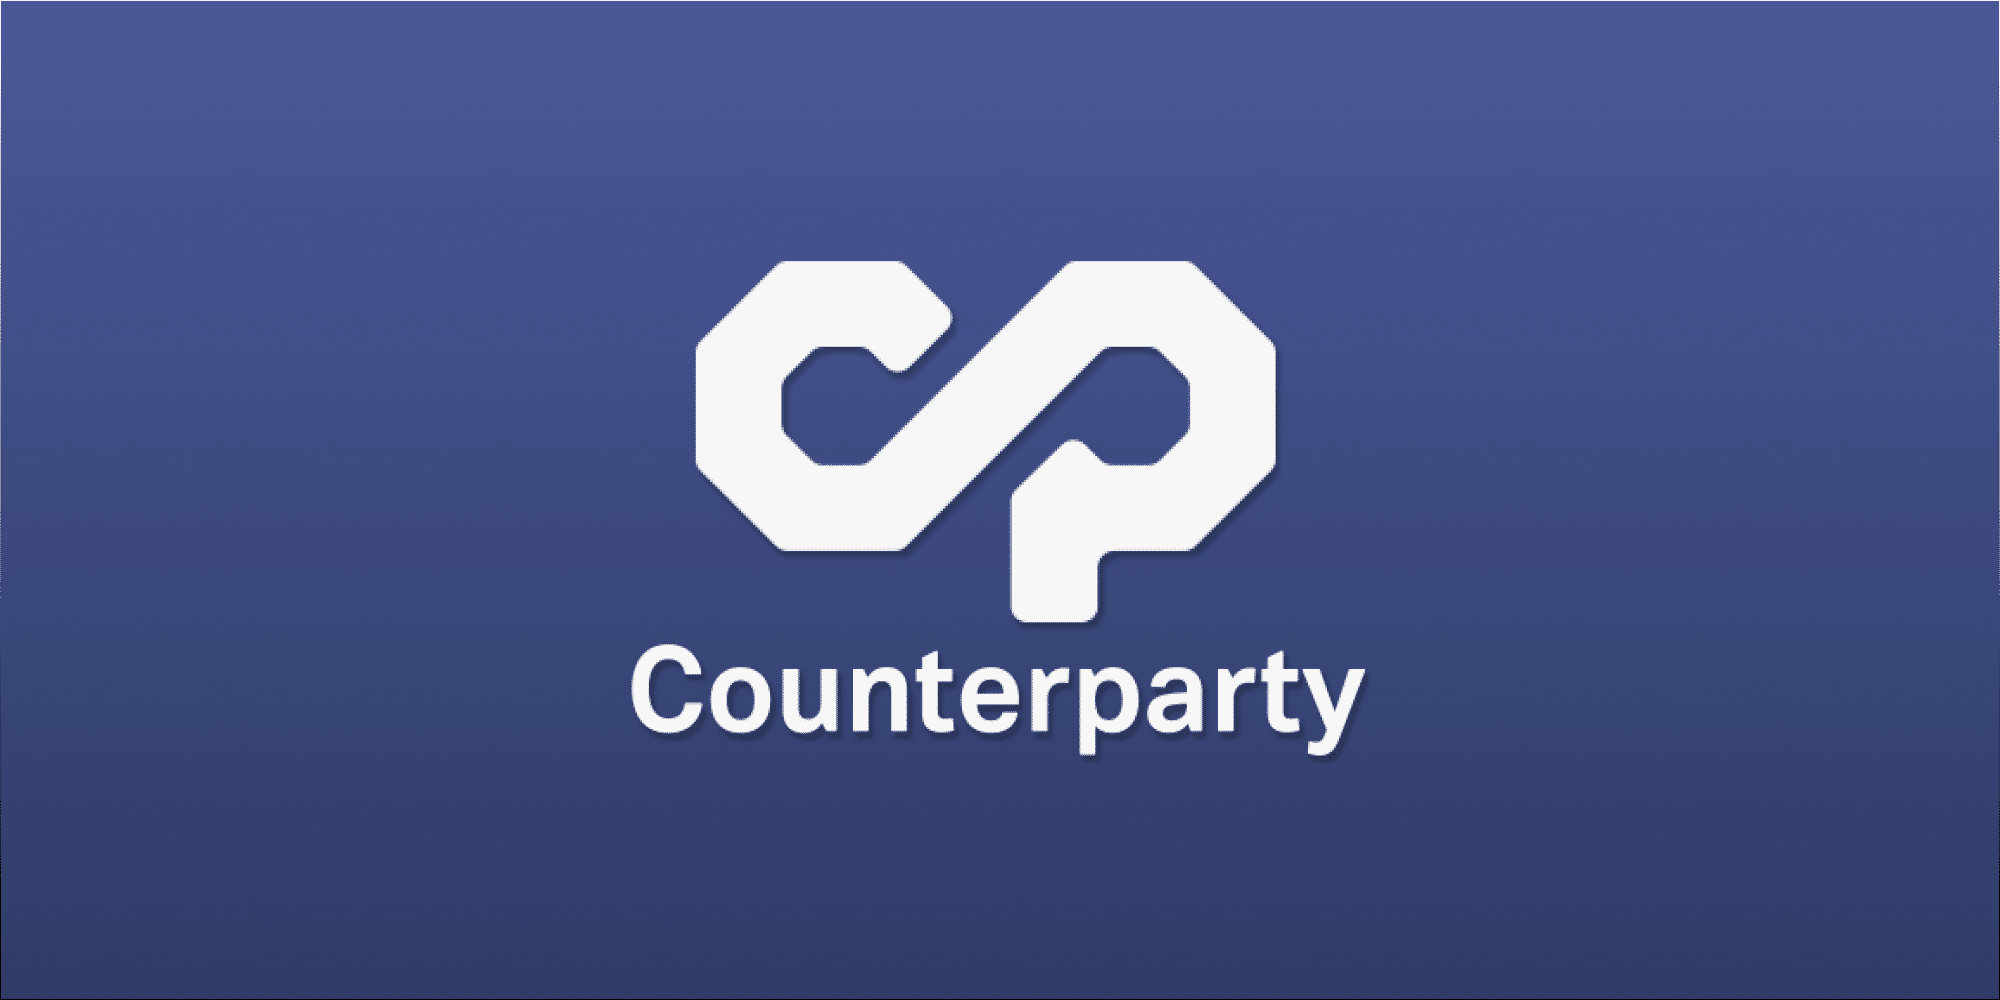 Counter Wallet Review 2020: Is It Safe? Is It Easy To Use? Here Is What We Found Out